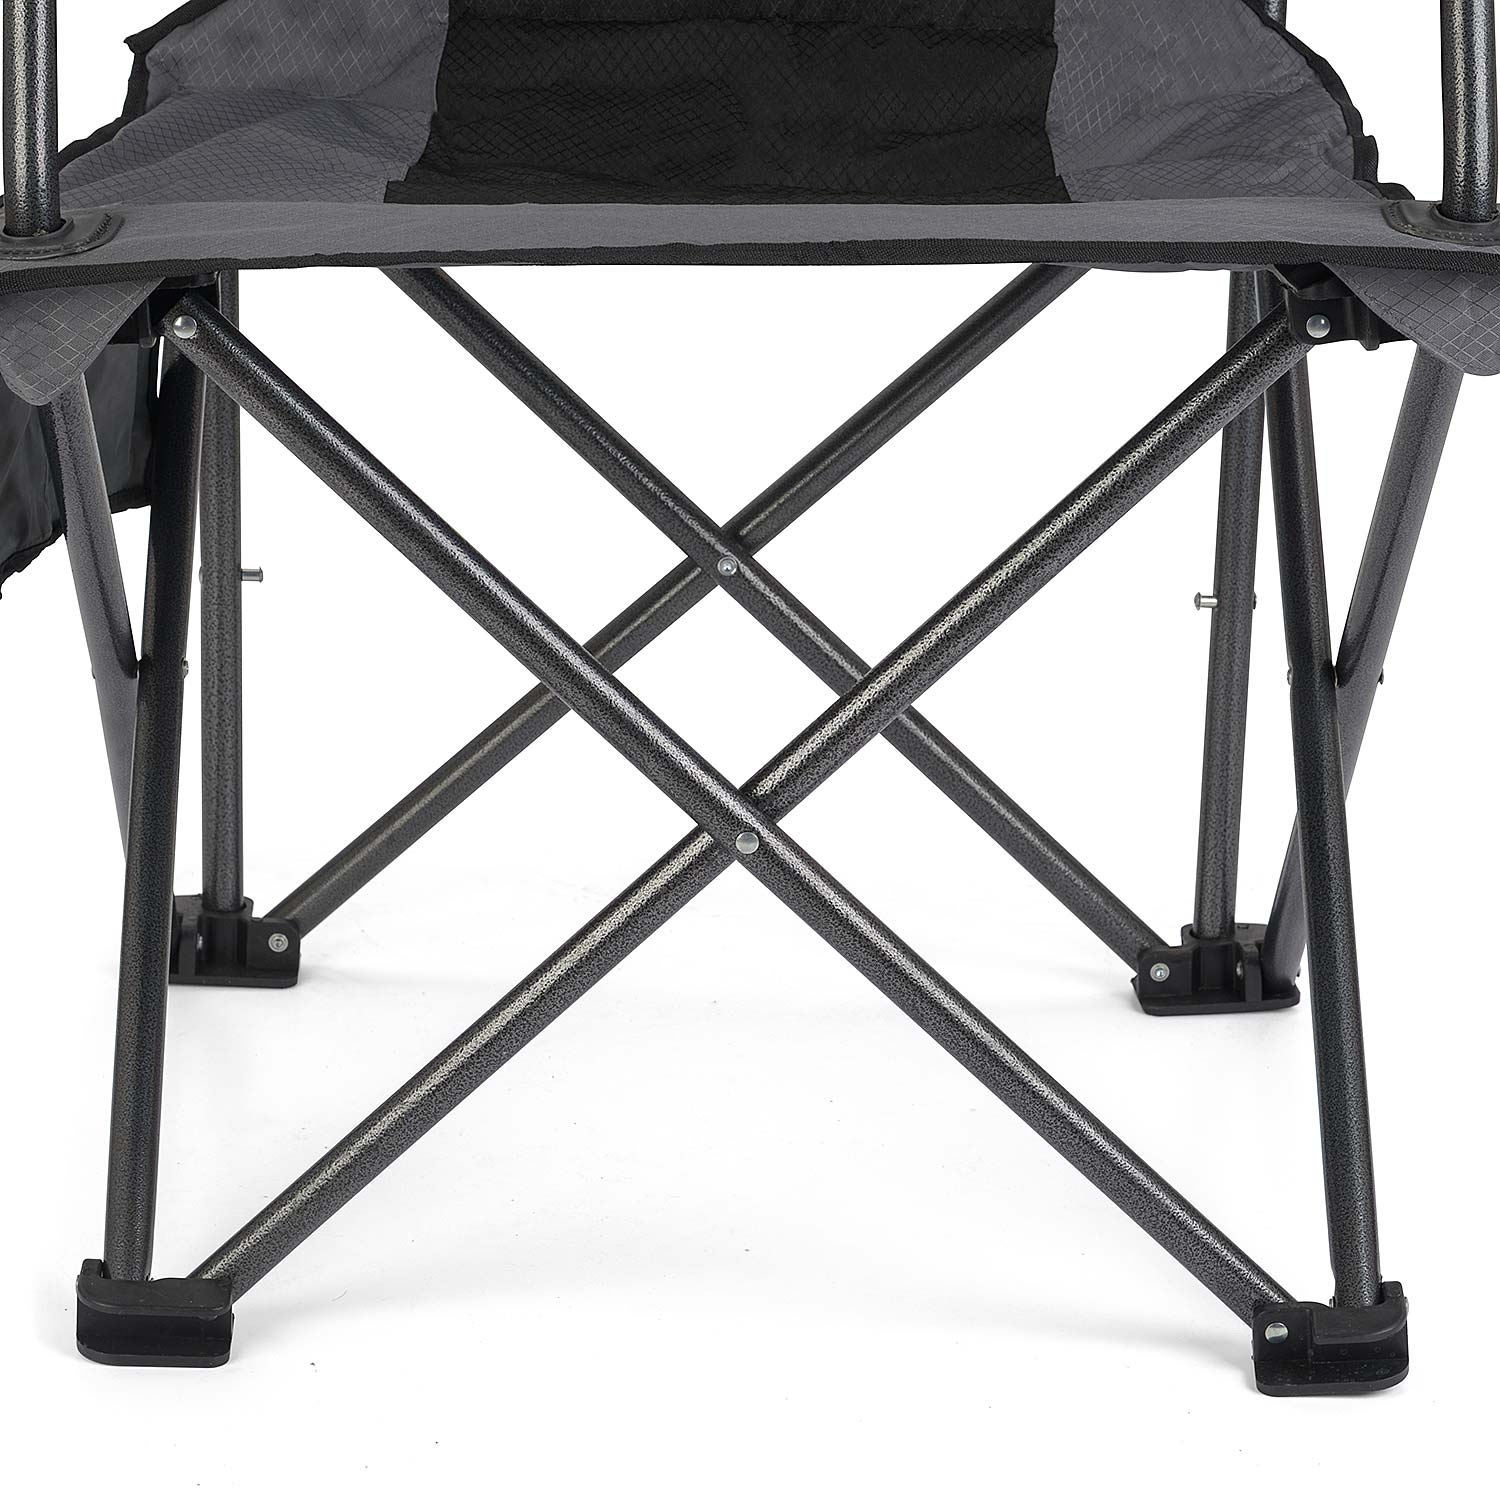 Folding Camping Chair Lightweight Portable Luxury Double